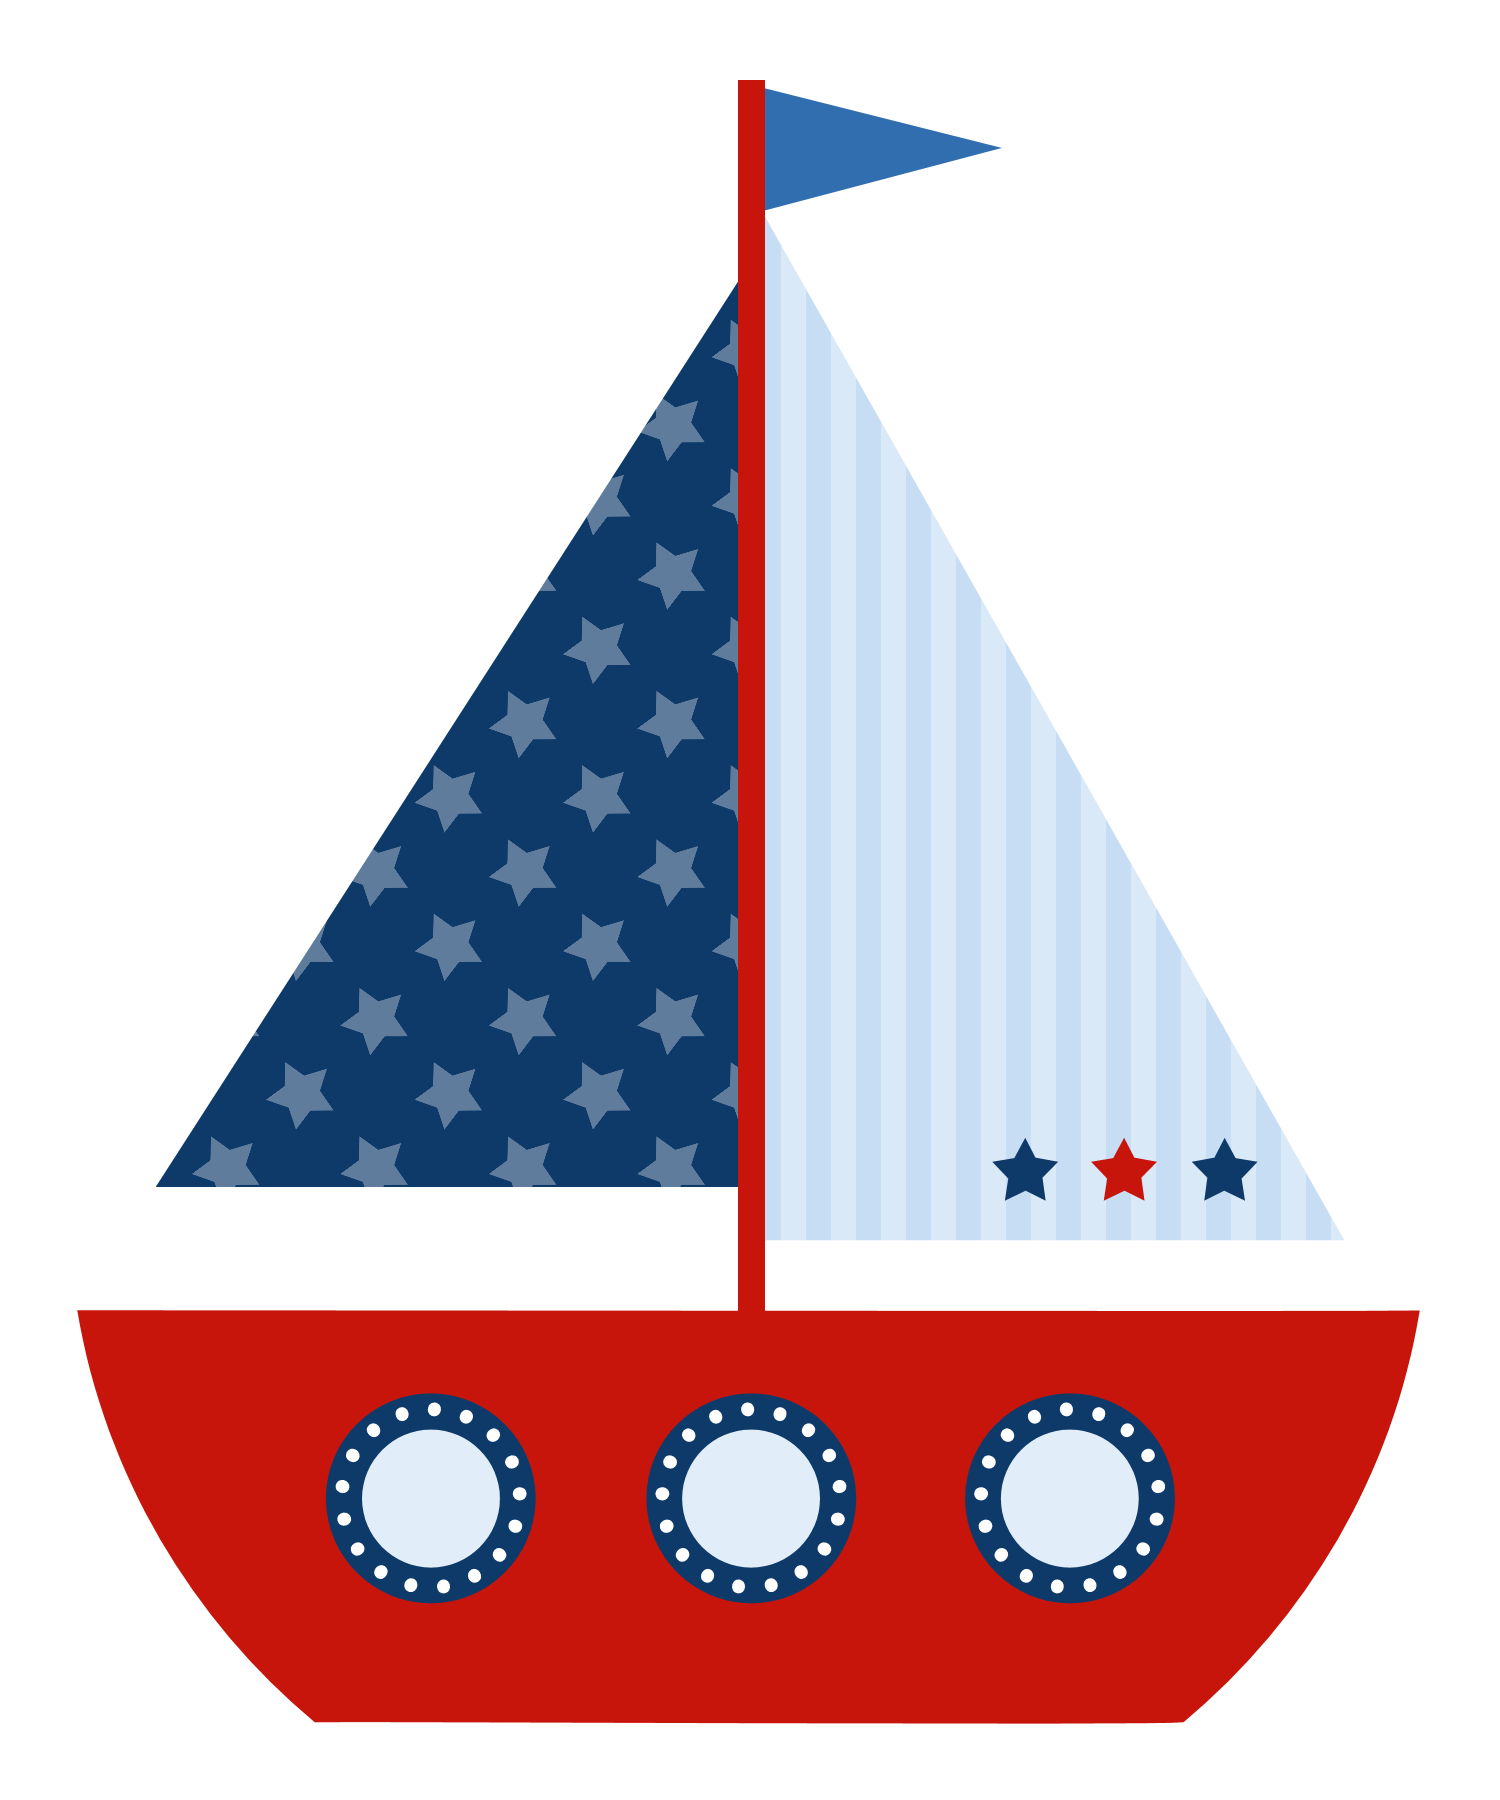 Nautical clipart nautical baby shower. Free sailboat cliparts download